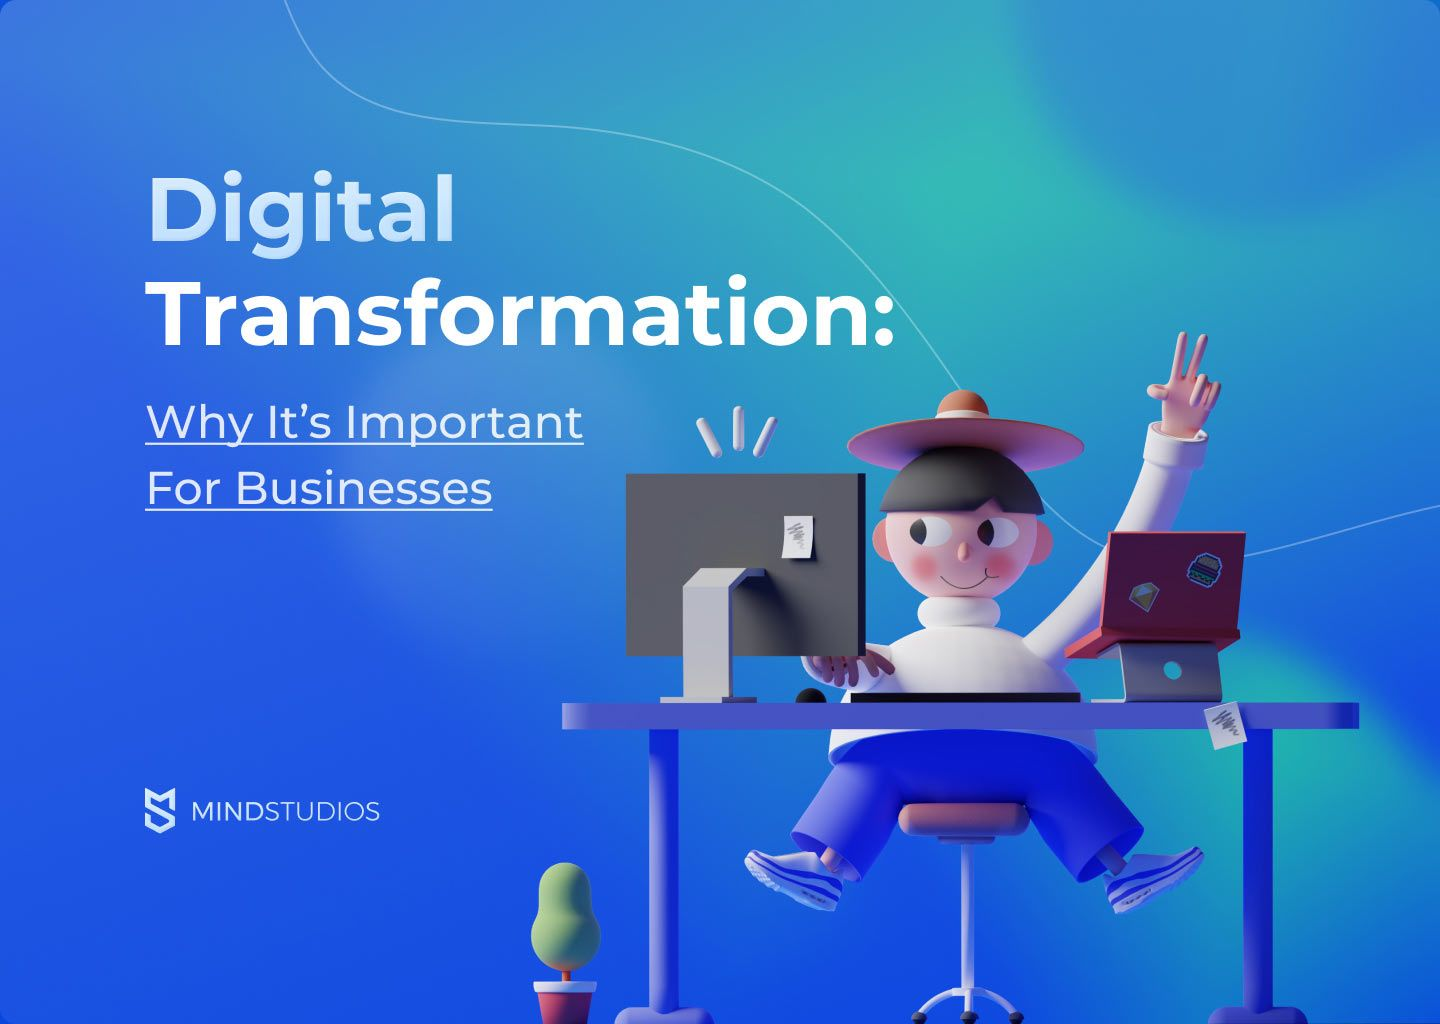 Digital Transformation: Why It's Important For Businesses